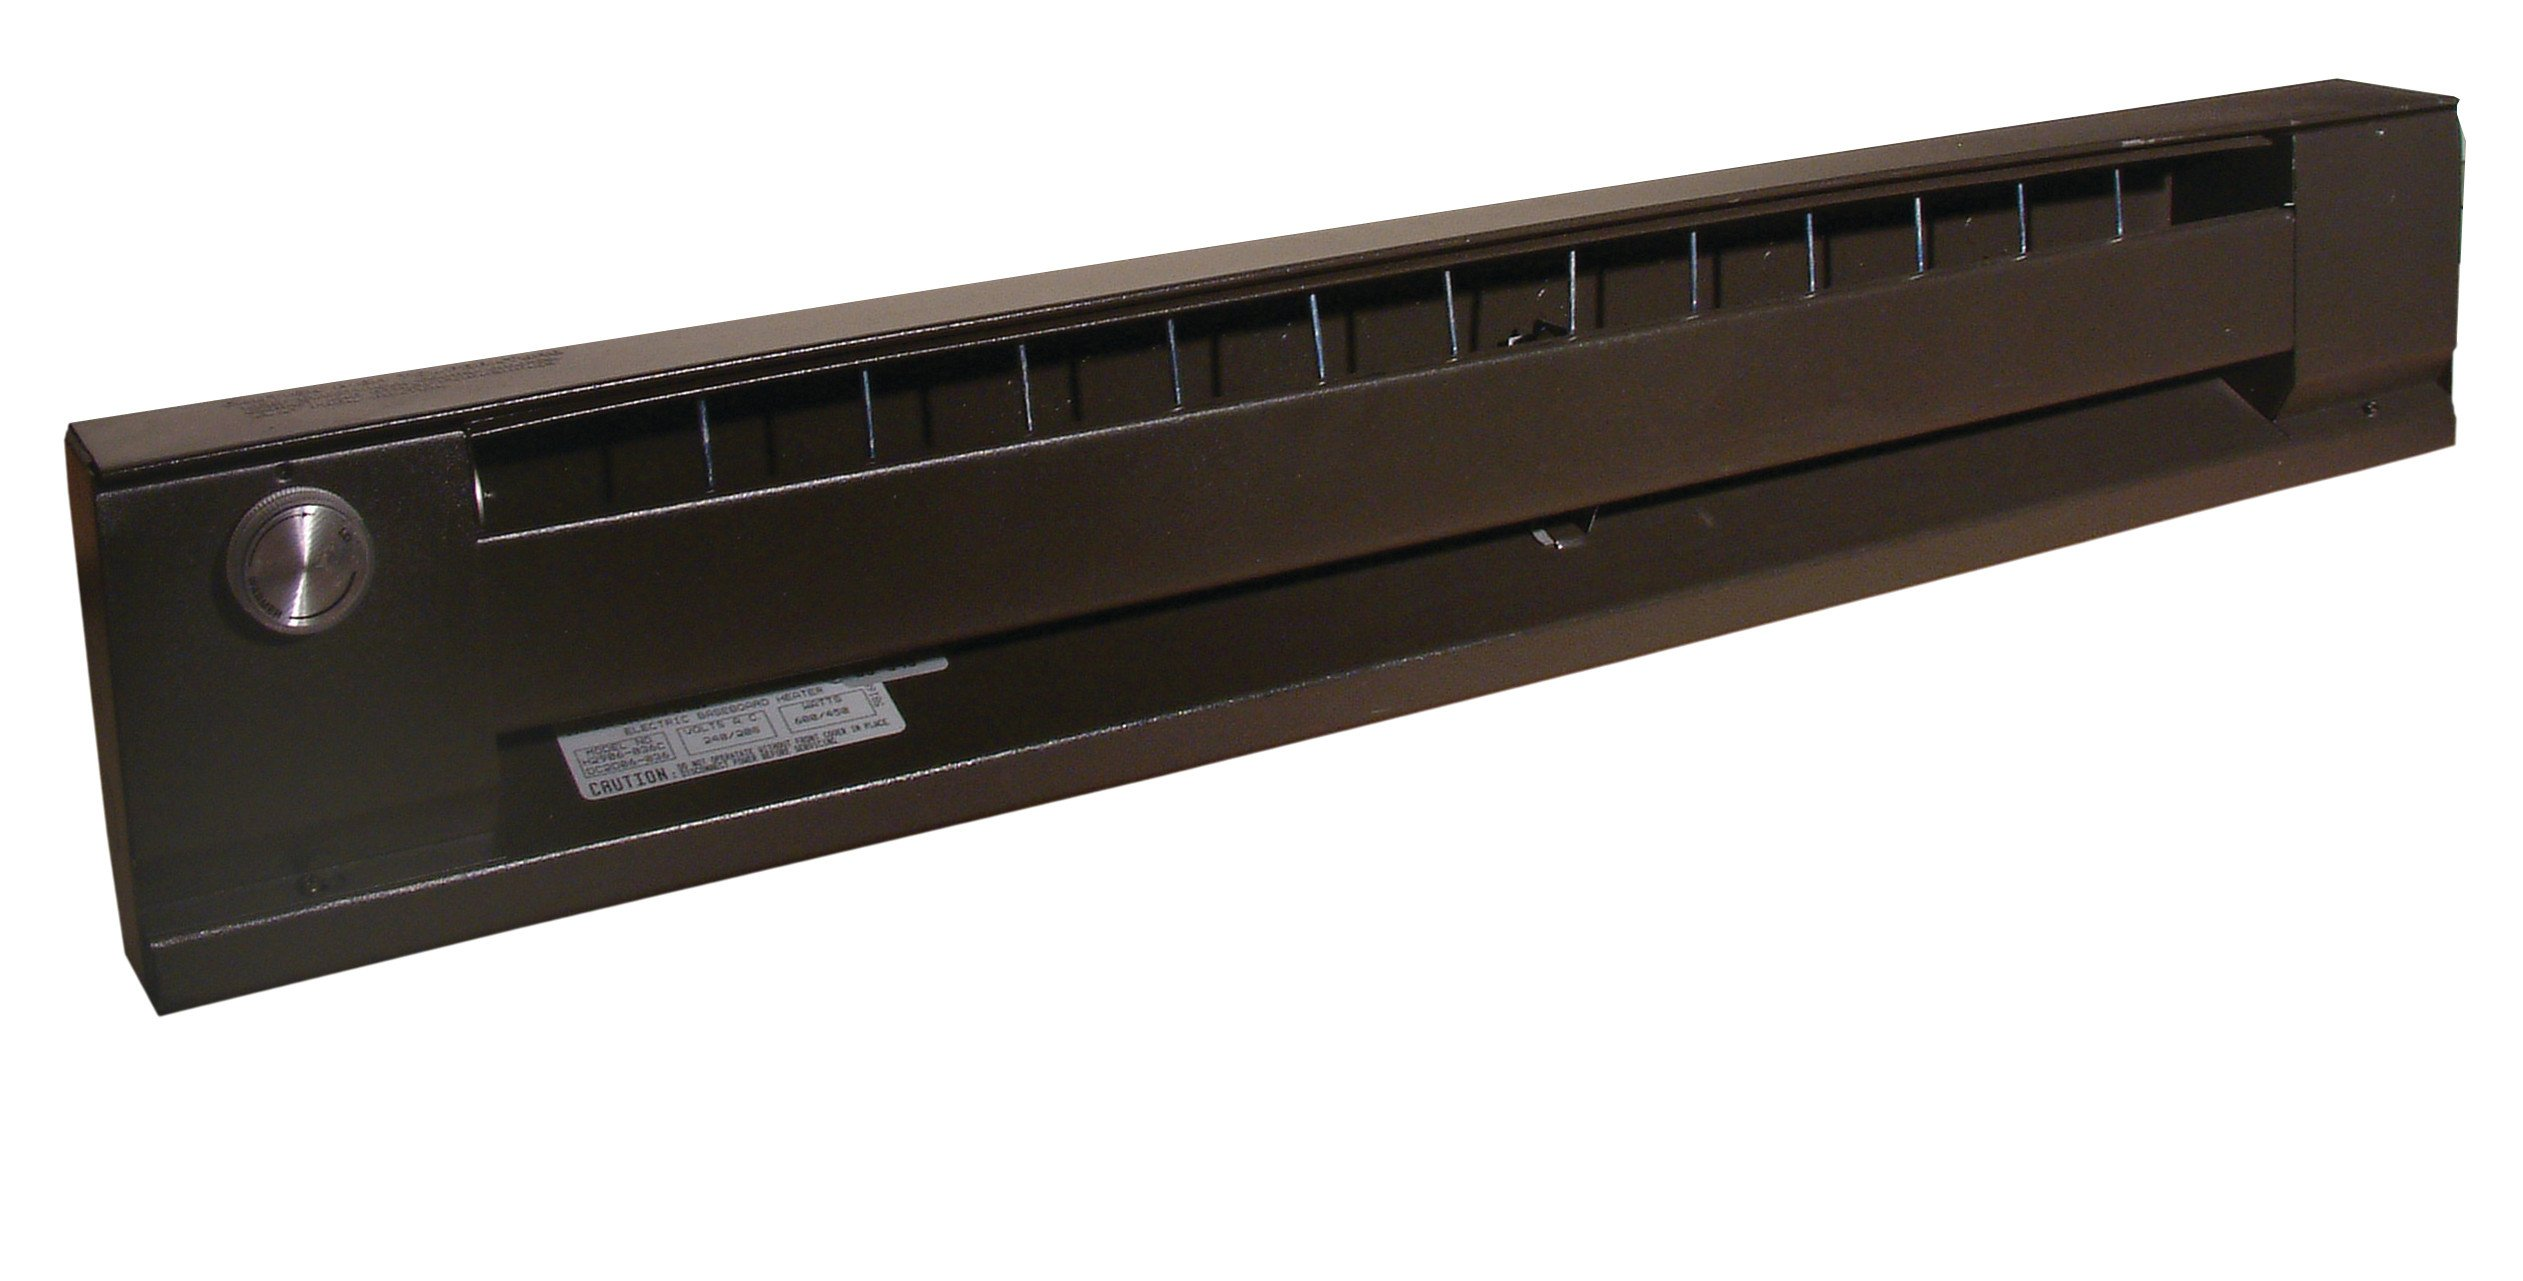 TPI BBS048C Blank Section for Series 2900C Electric Baseboard, 48'' Length, Bankers Bronze by TPI